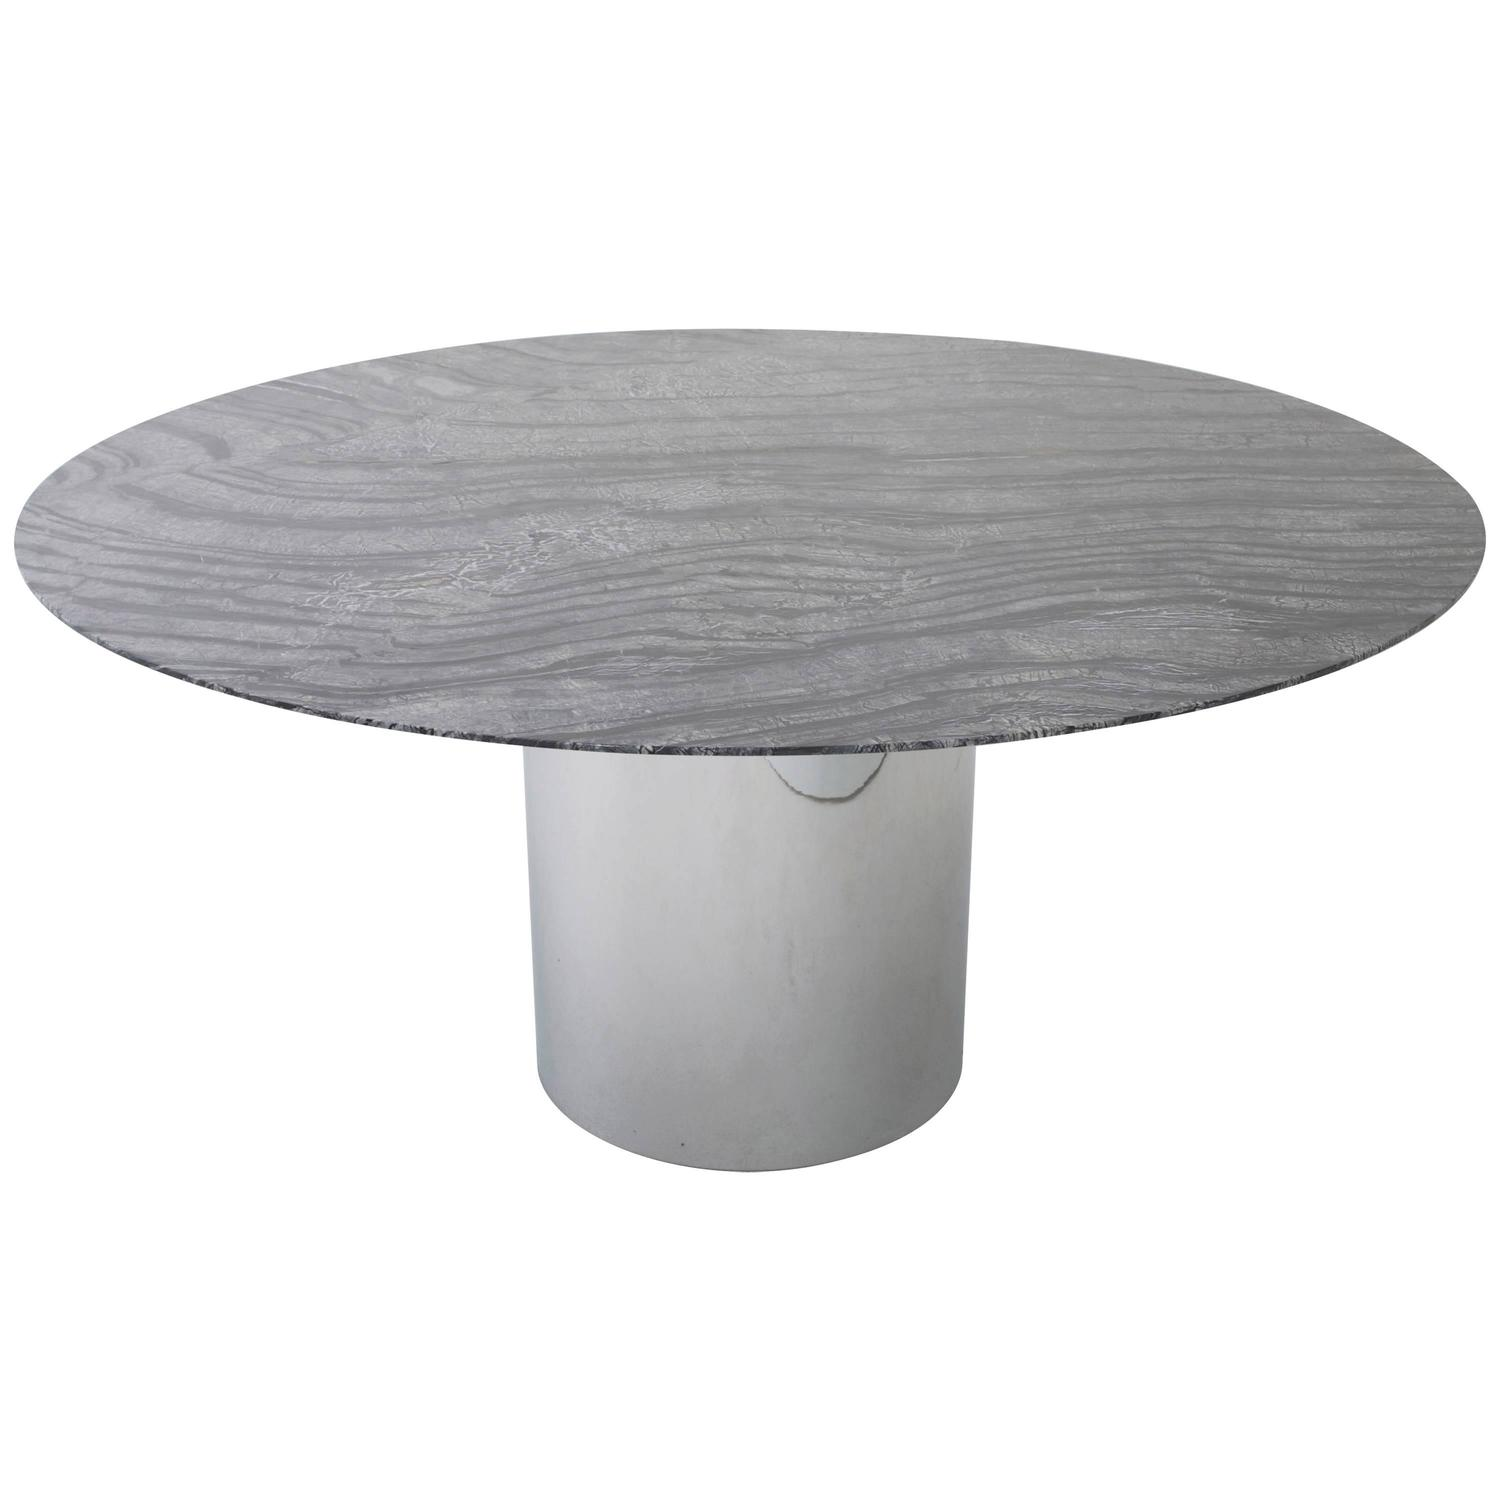 knoll dining table with  quot round marble top at stdibs: round white marble dining table